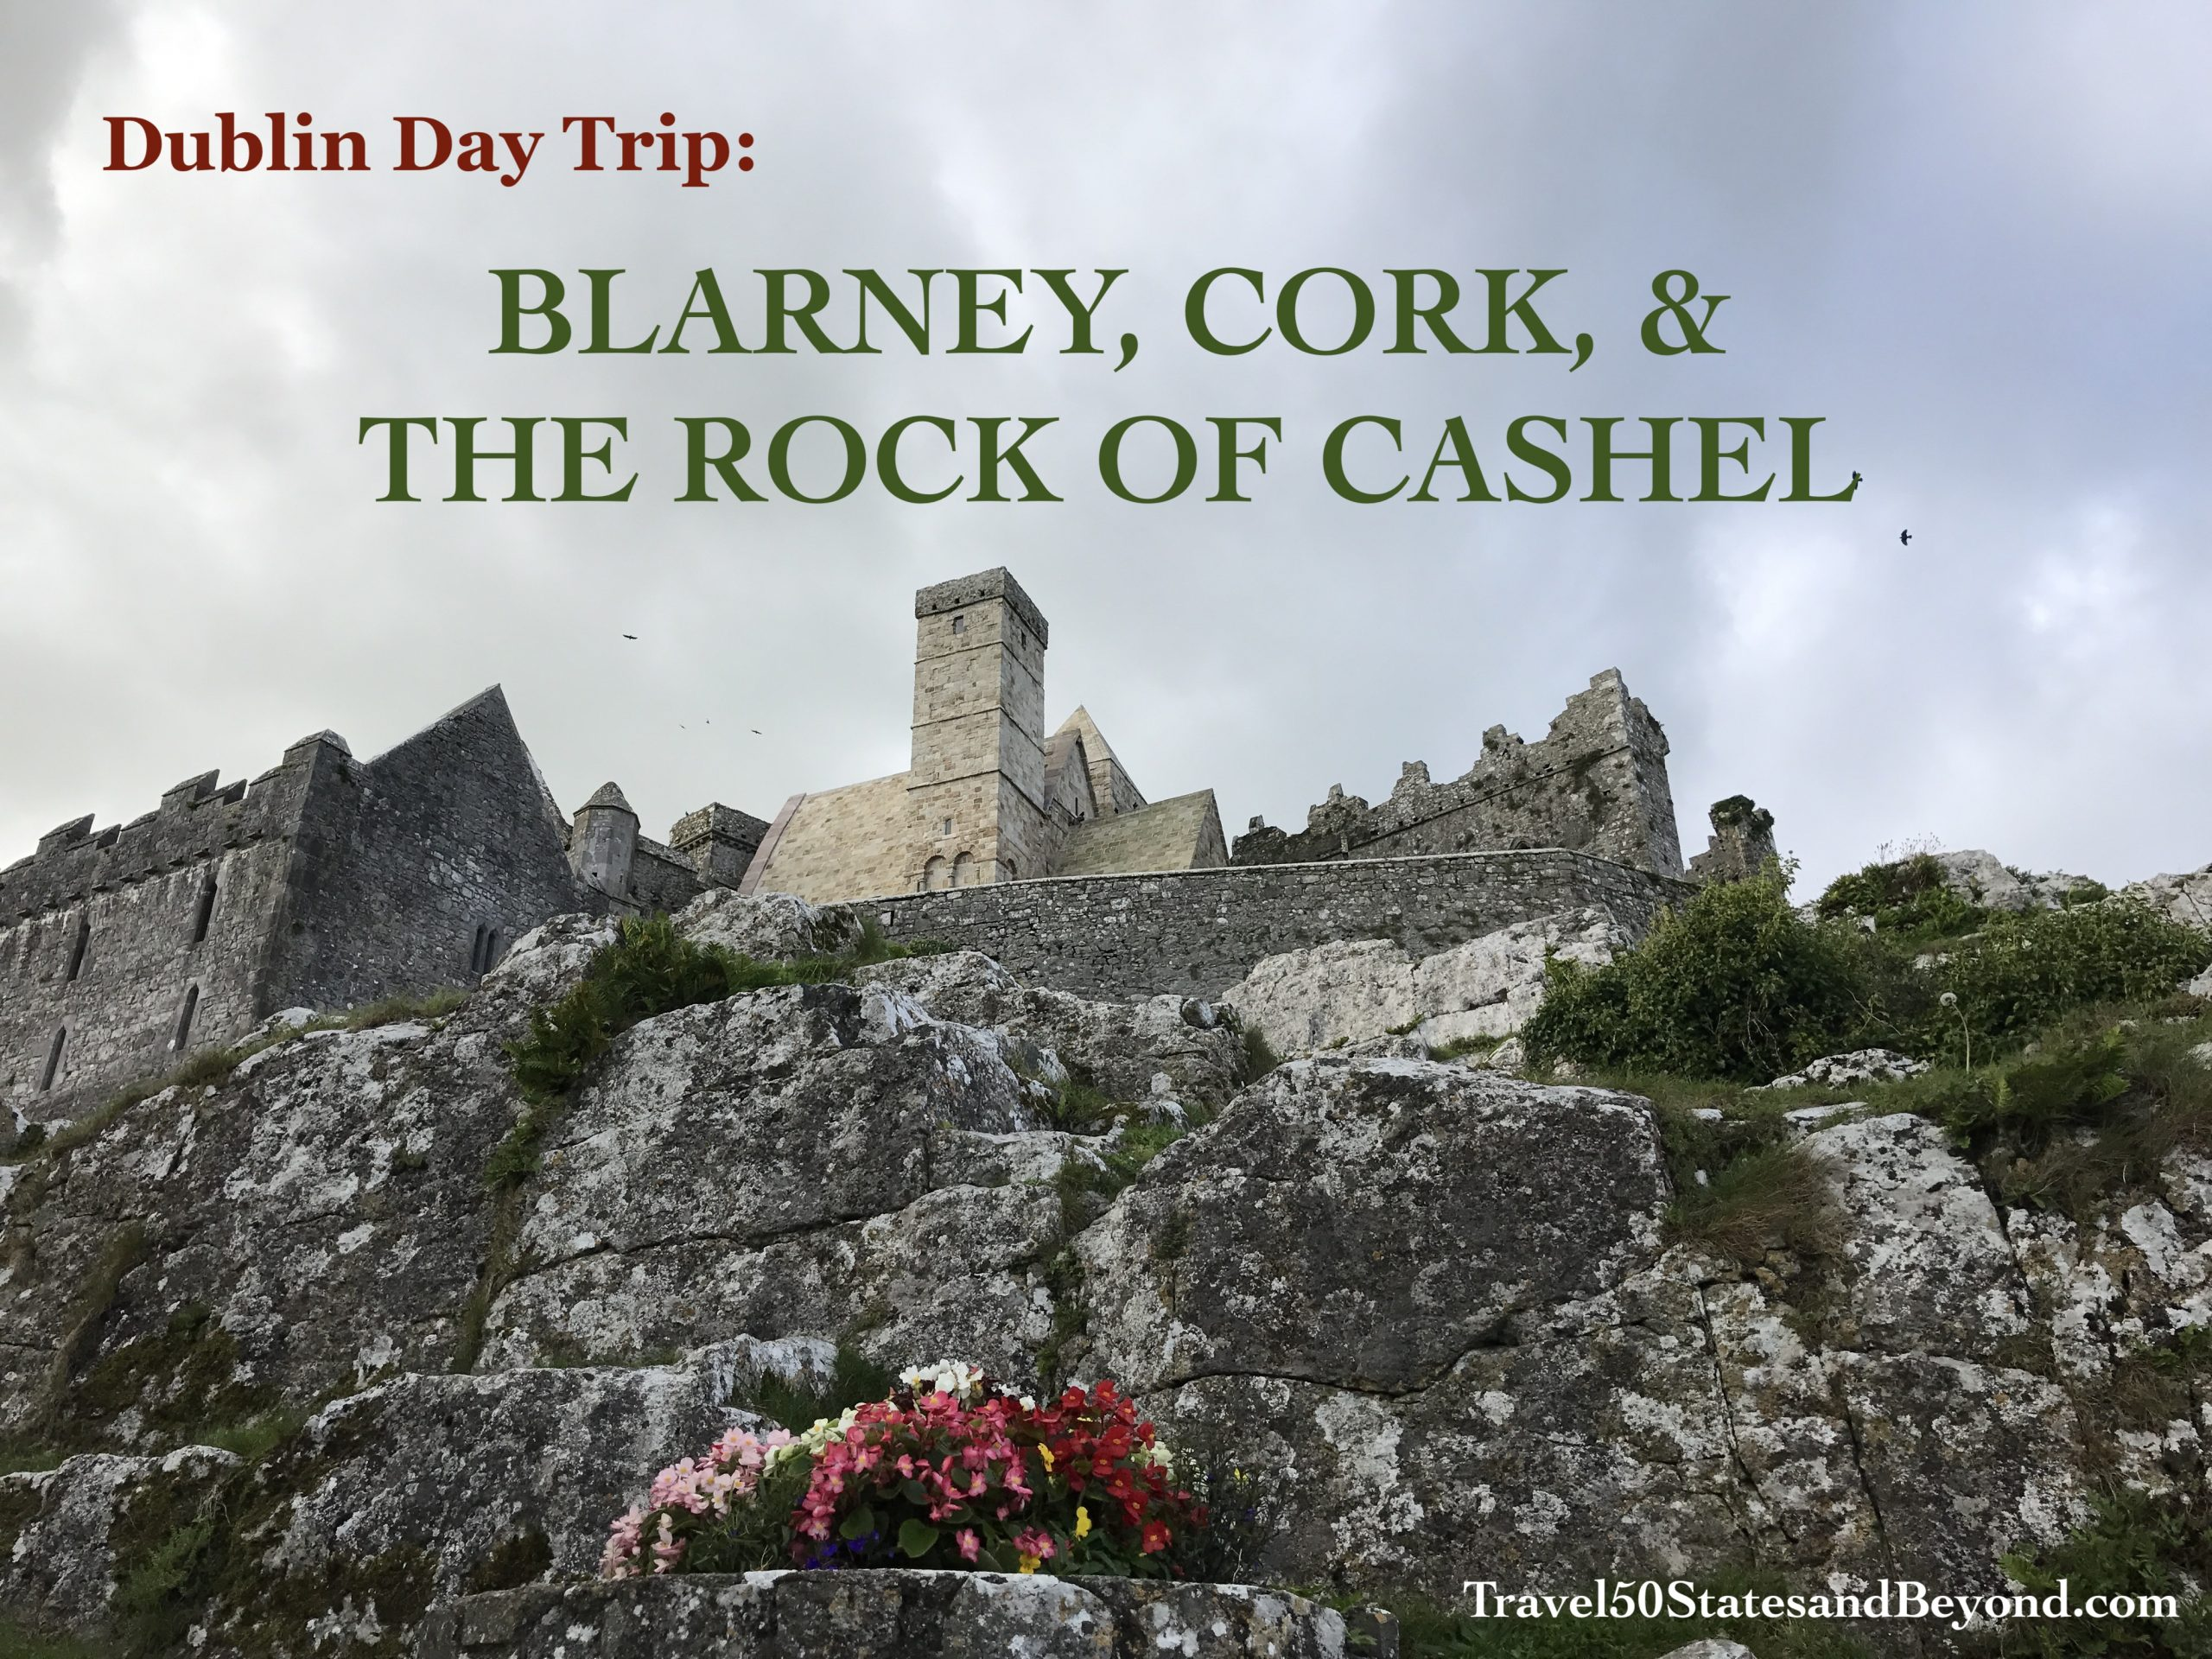 Day Trip From Dublin: Blarney, Cork, & Cashel